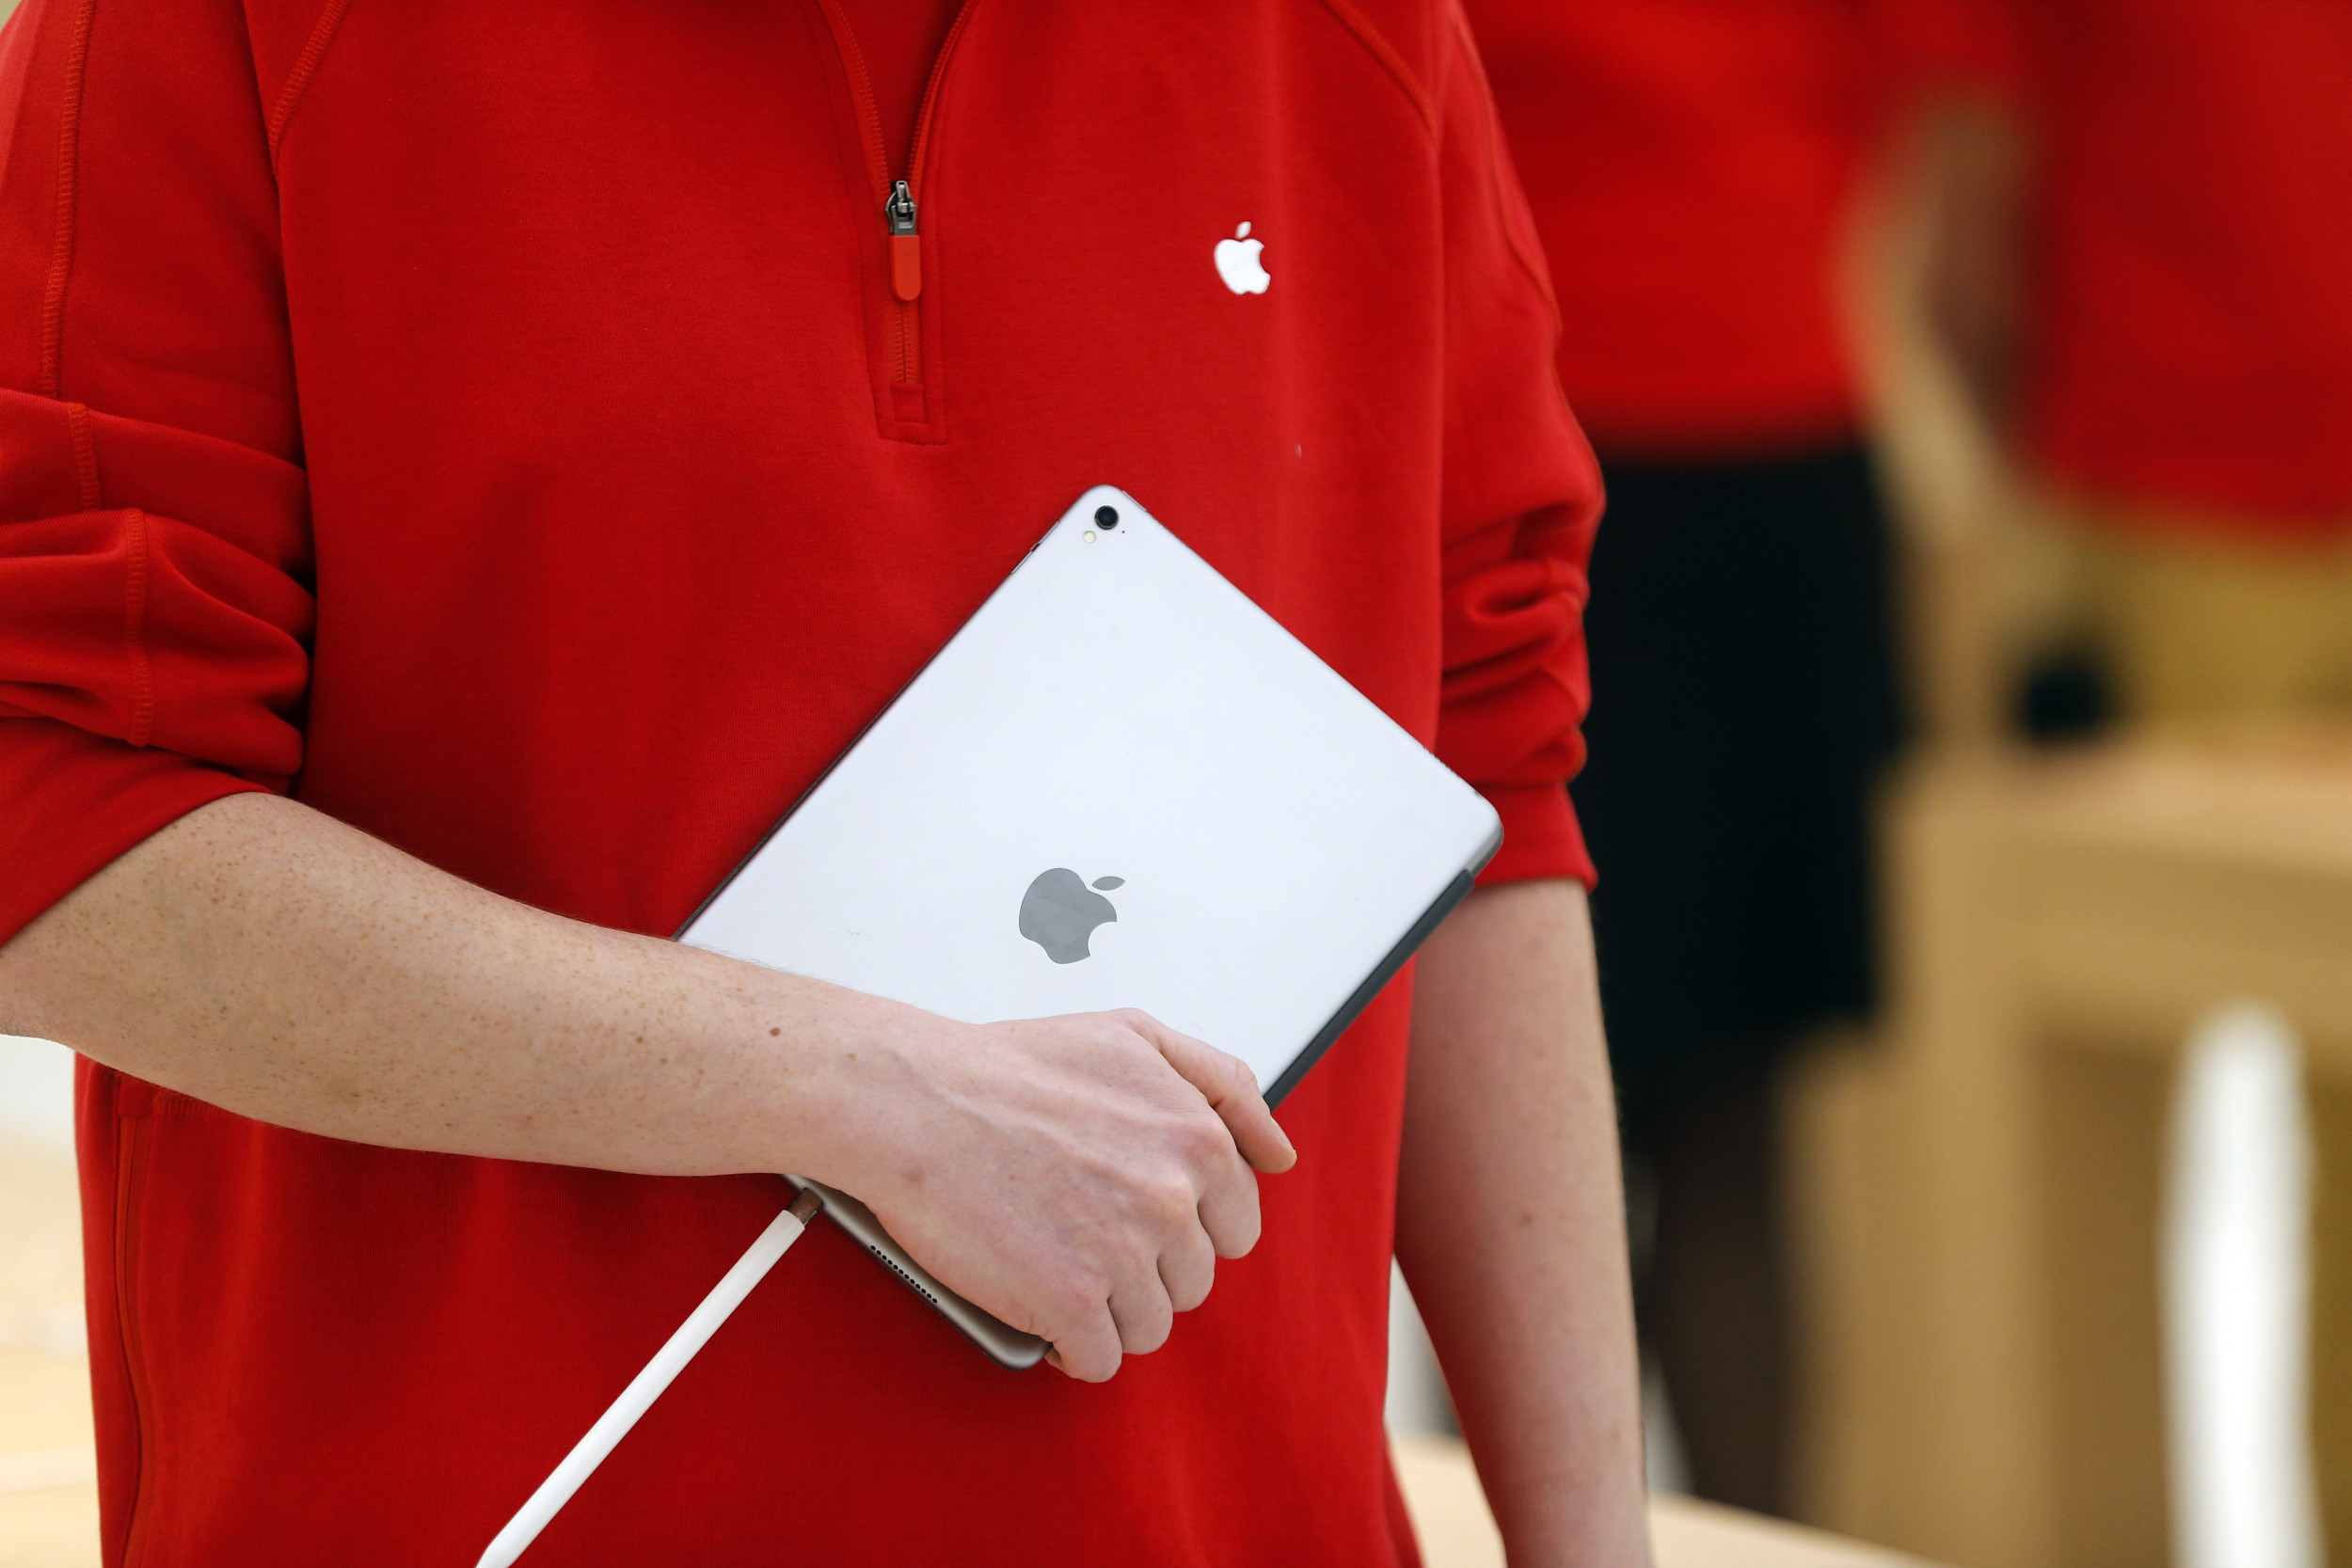 Apple Event Showcases New iPads: Here's How College Students